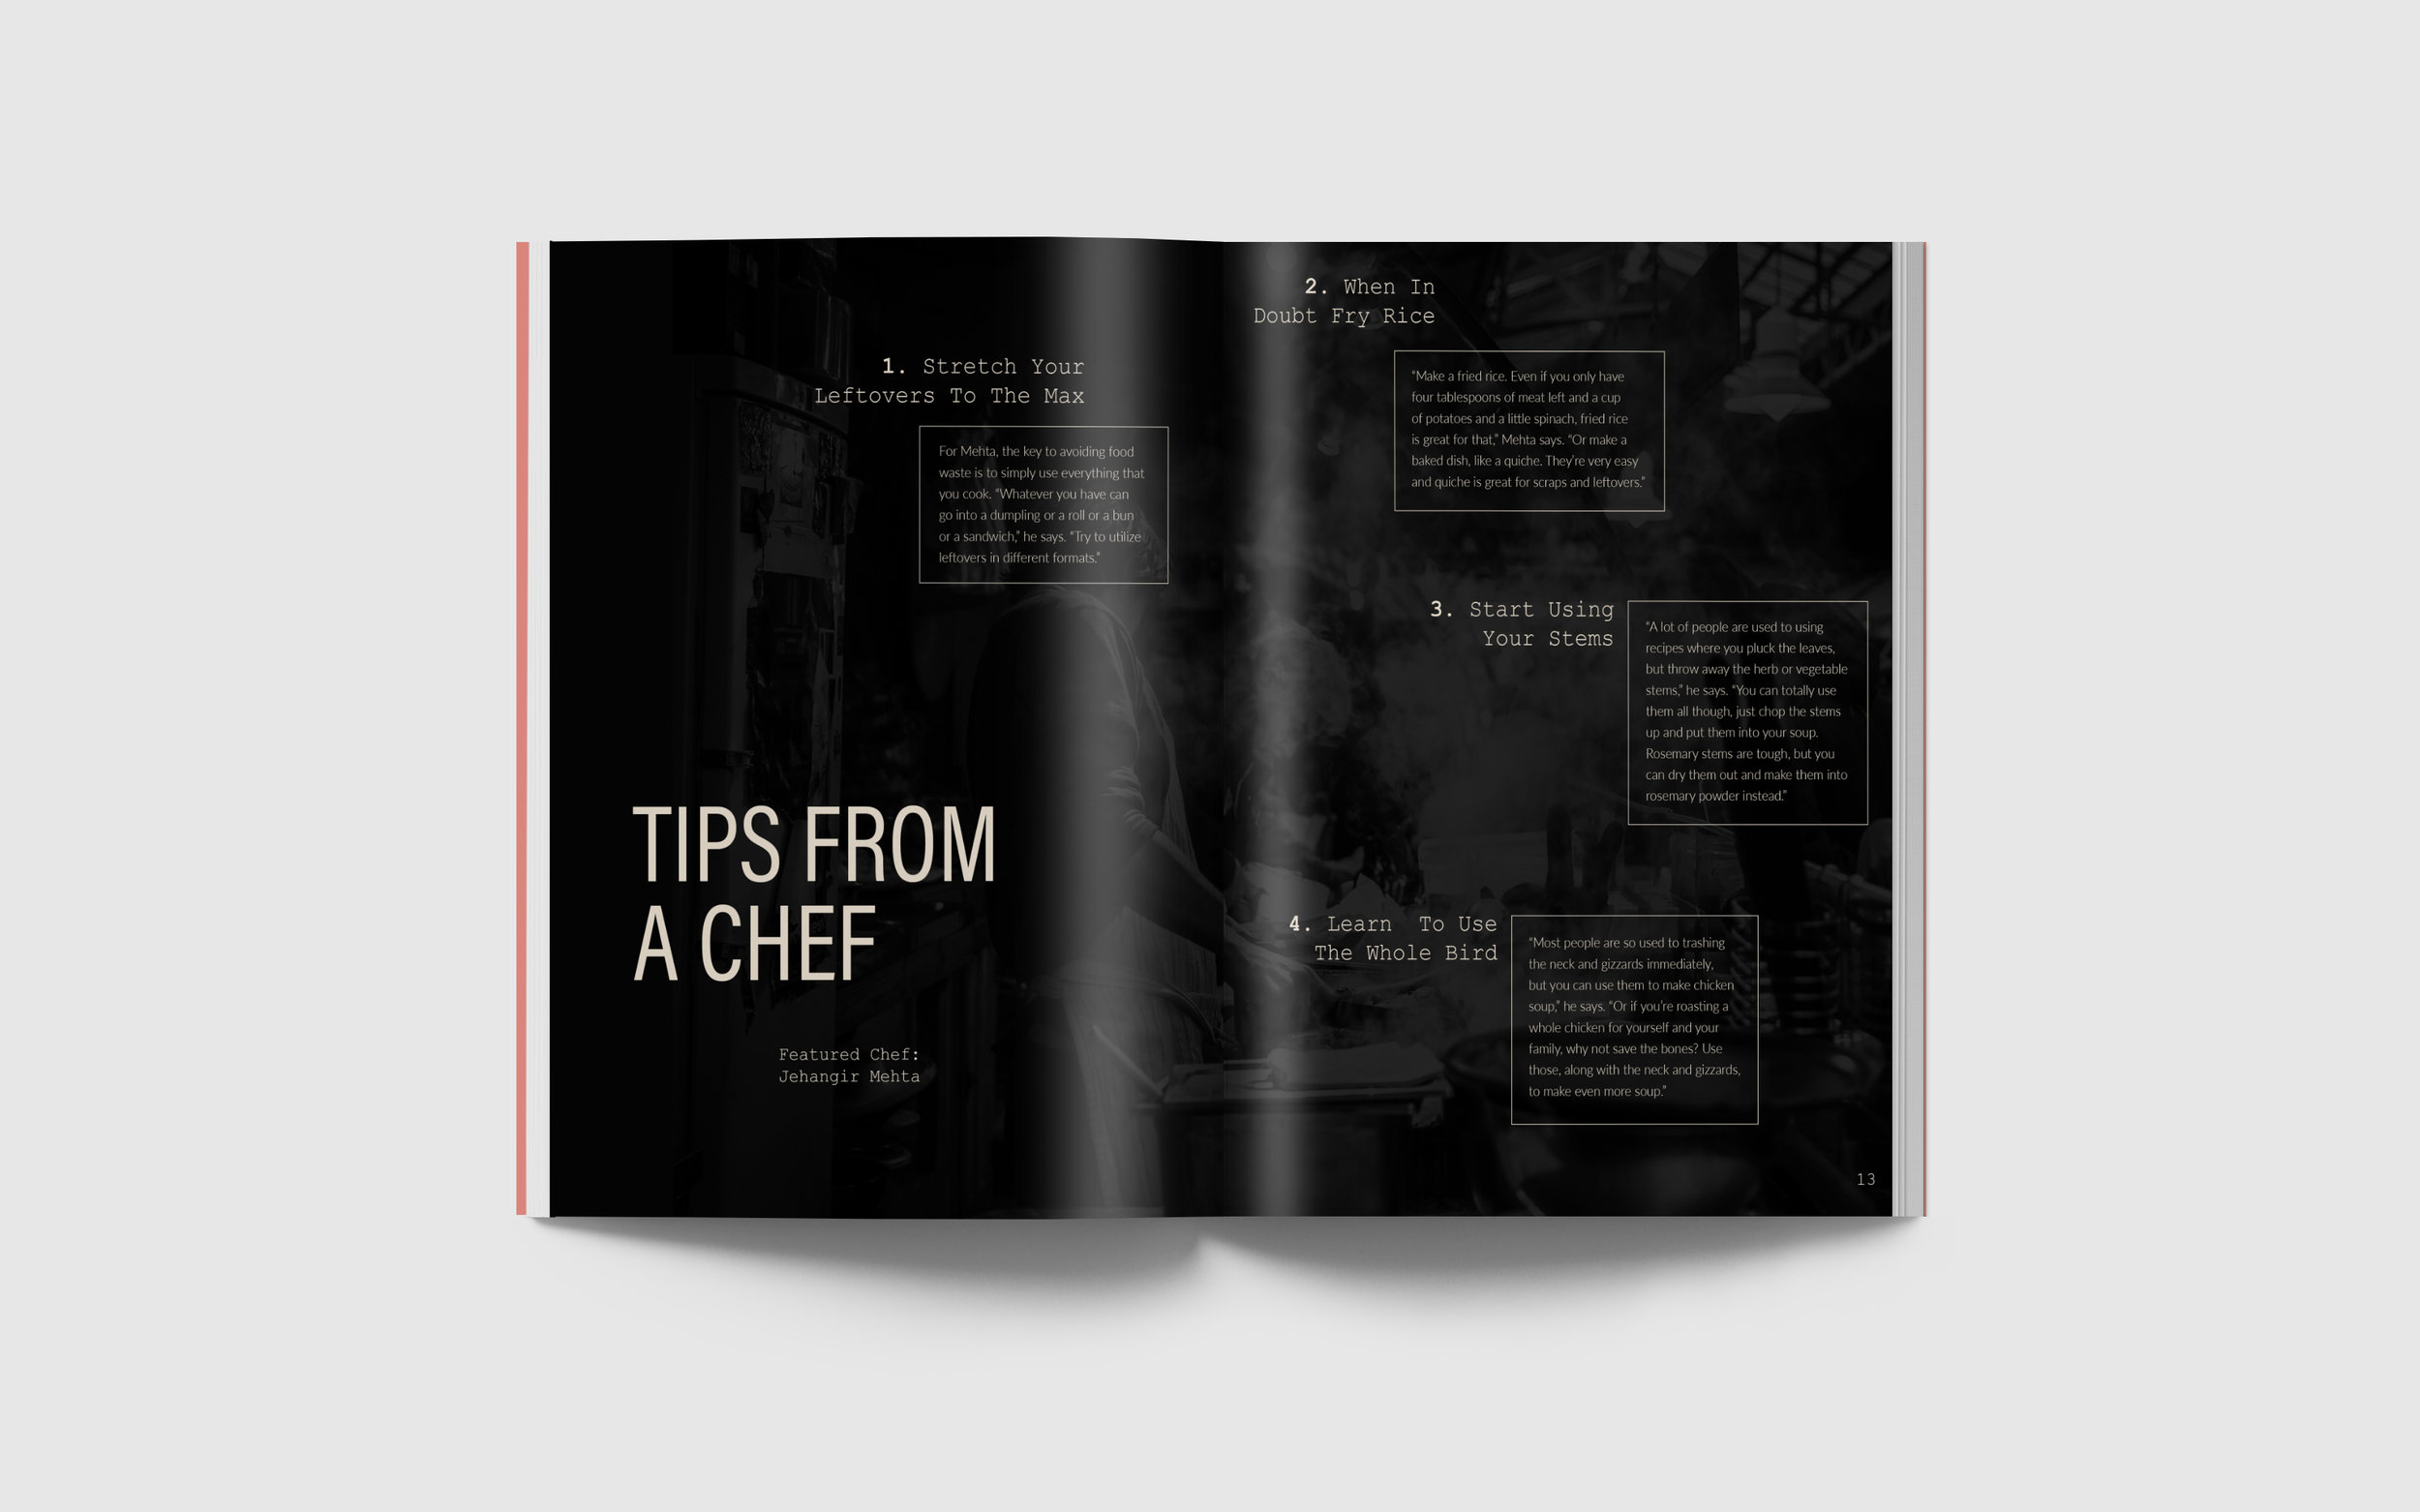 sell by chef tips.jpg